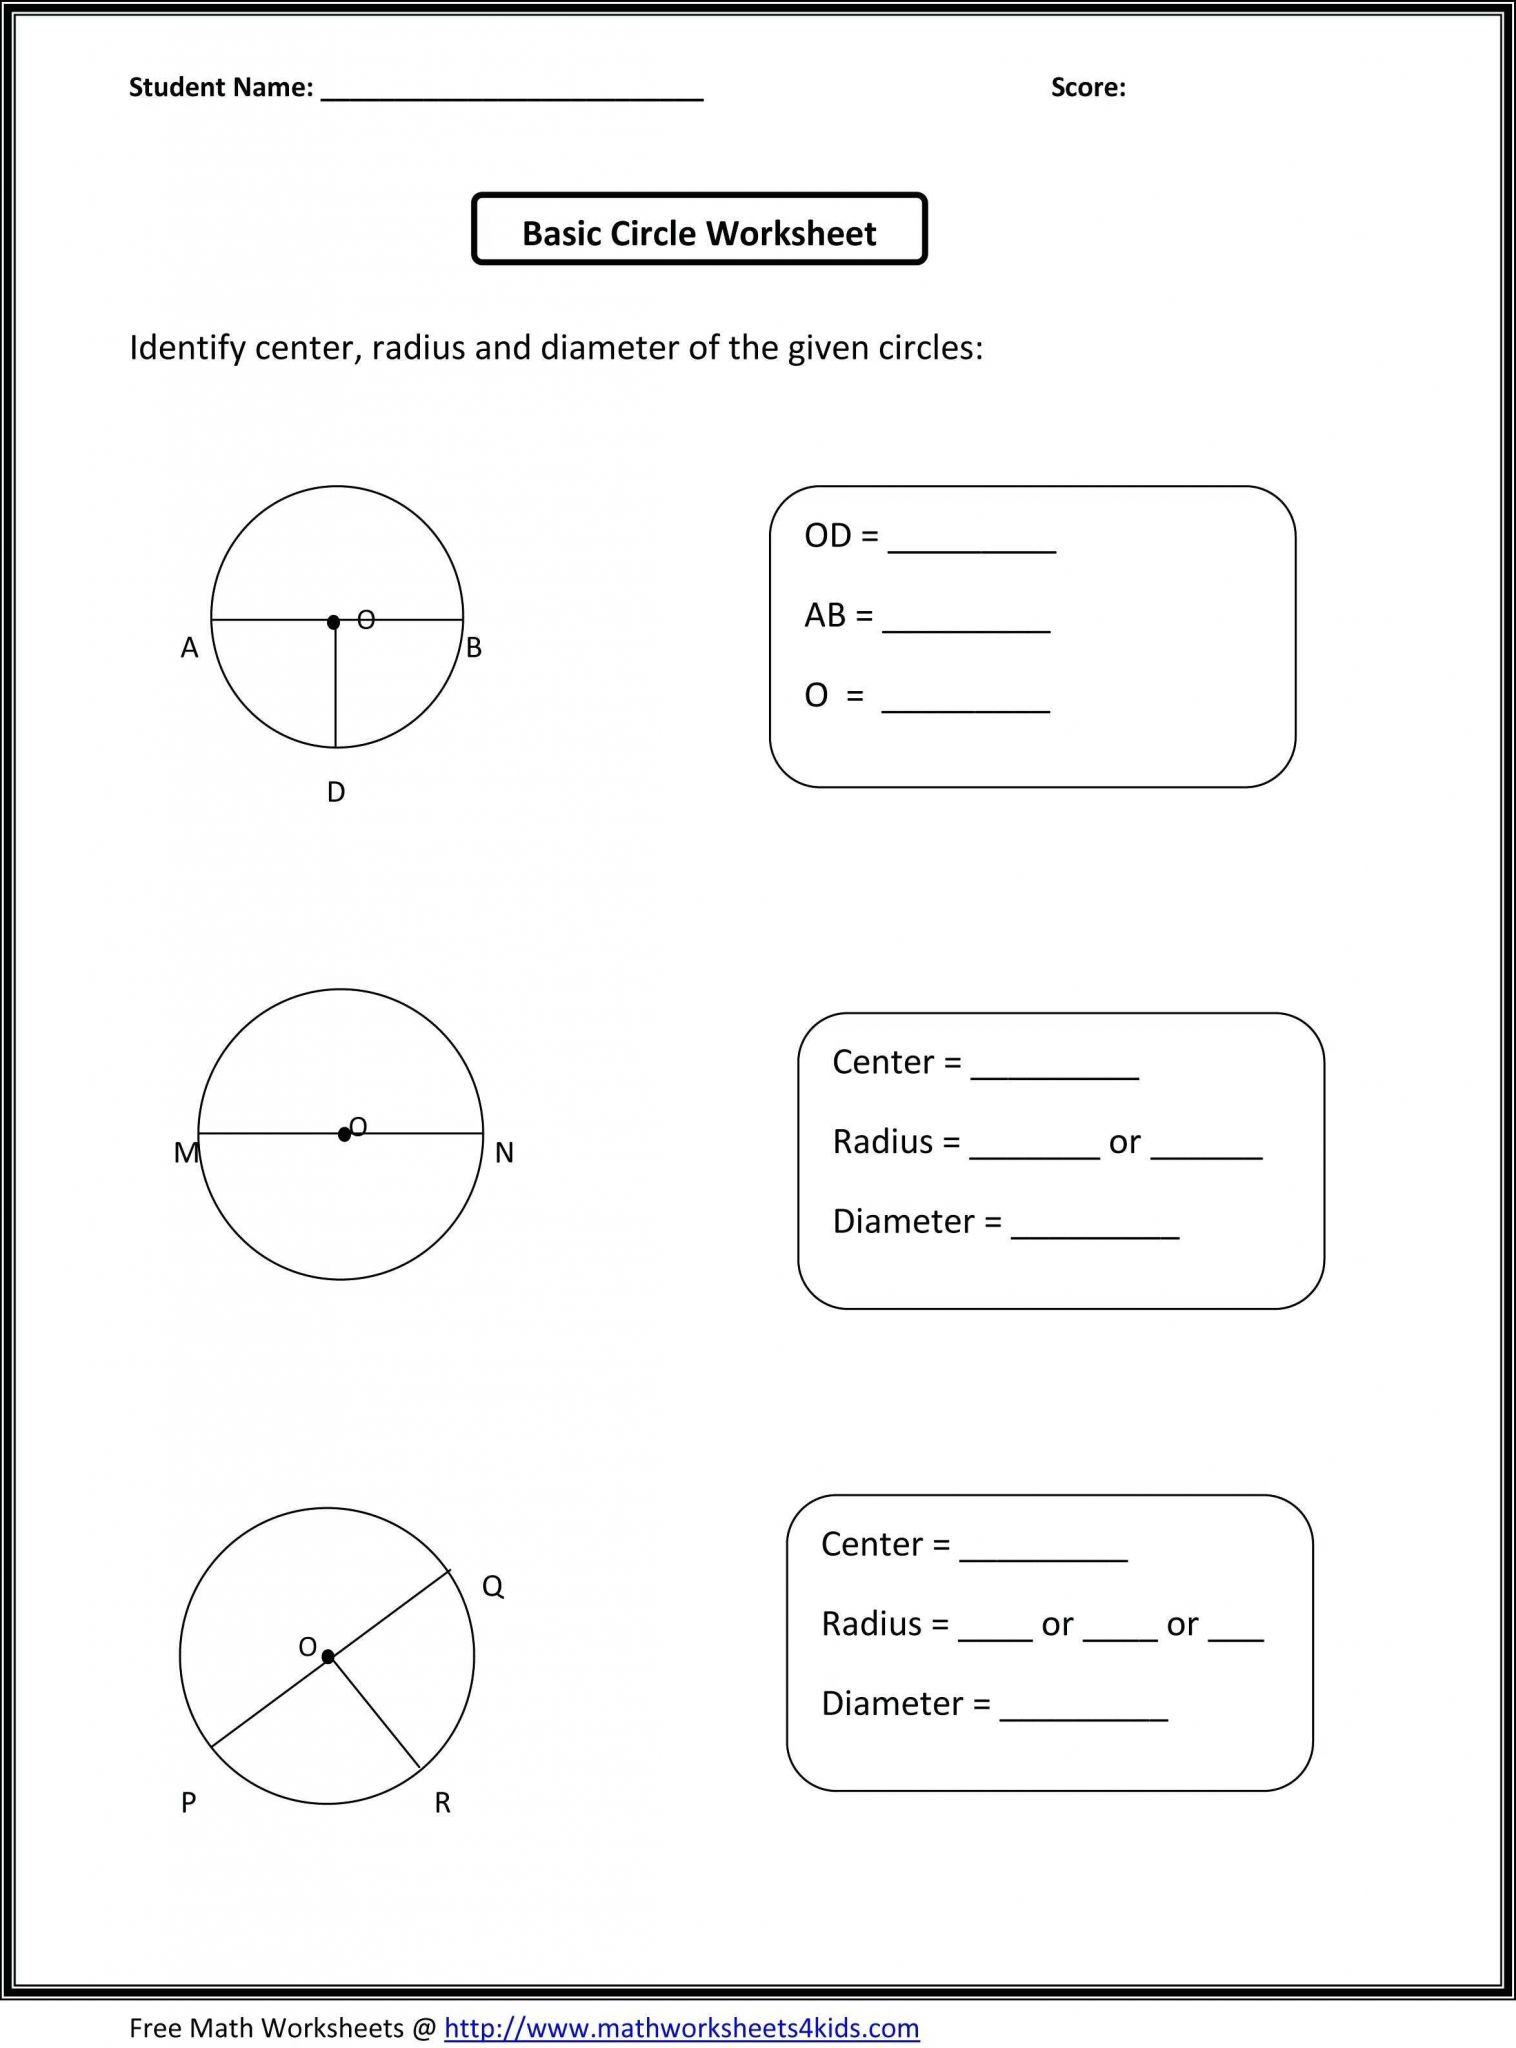 Arithmetic Sequence Worksheet Also Religious Math Worksheets the Best Worksheets Image Collection